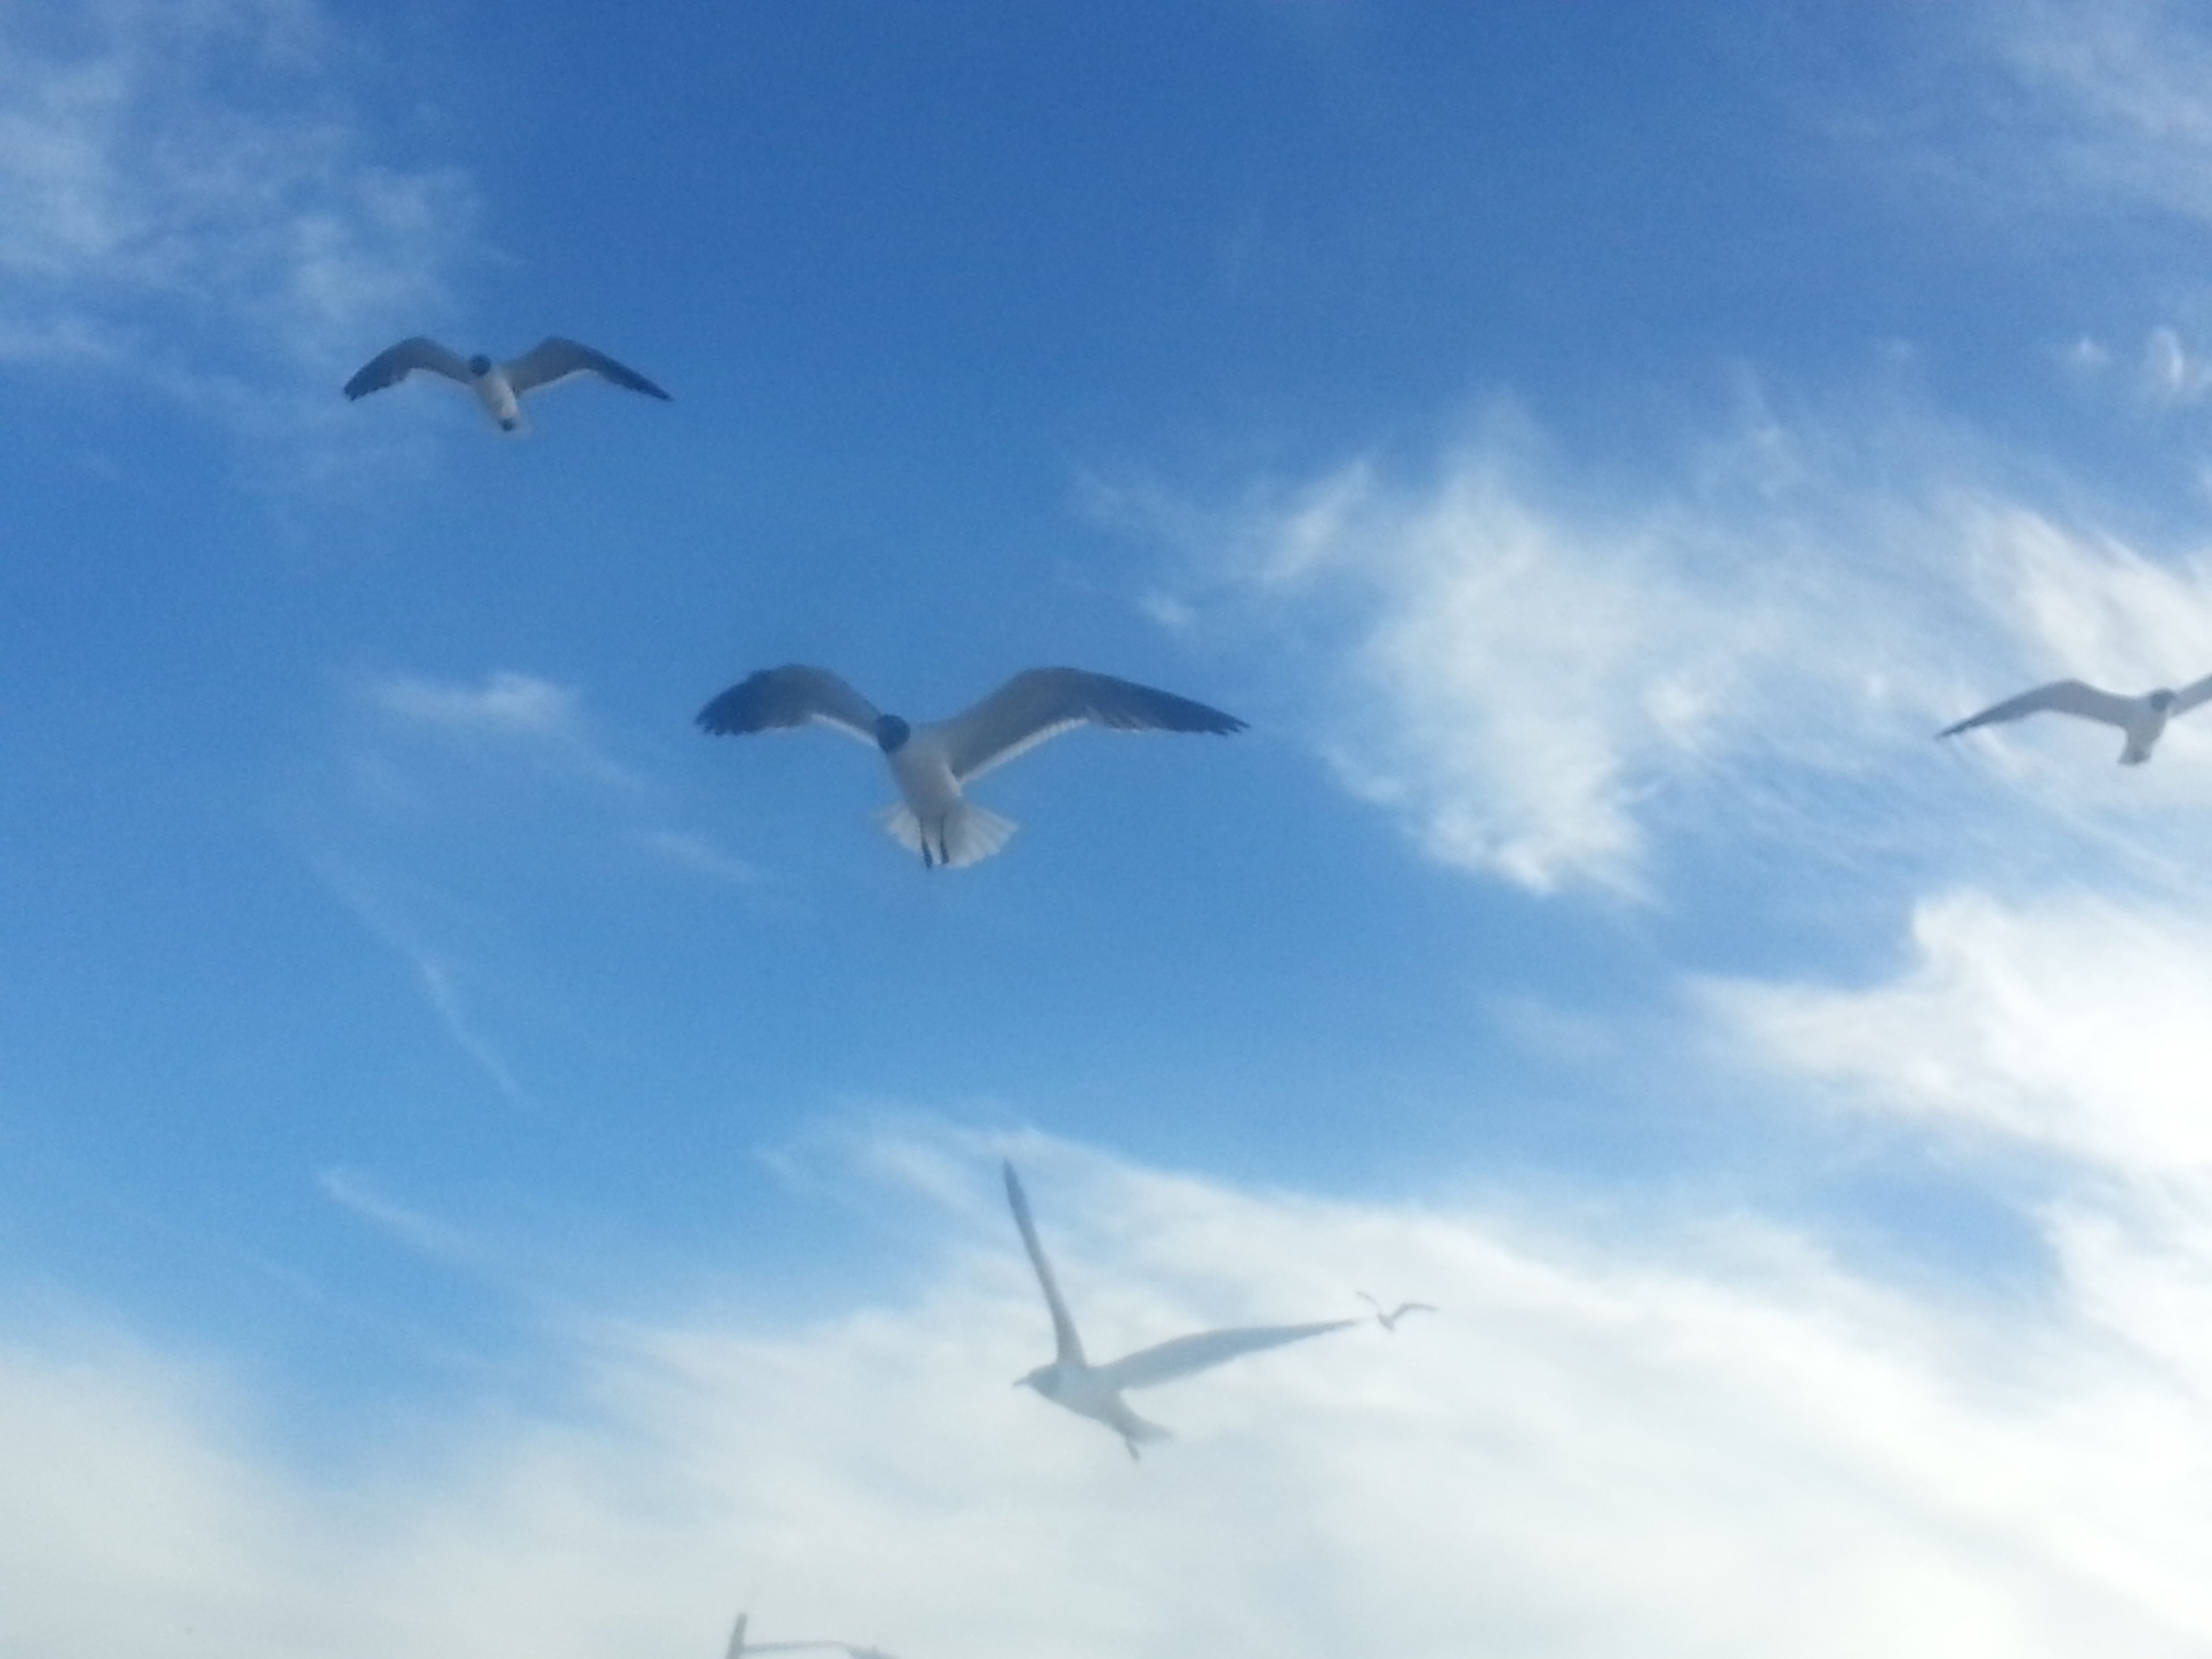 flying, bird, animal themes, low angle view, mid-air, spread wings, animals in the wild, wildlife, seagull, sky, flight, on the move, blue, motion, cloud - sky, airplane, one animal, nature, cloud, freedom